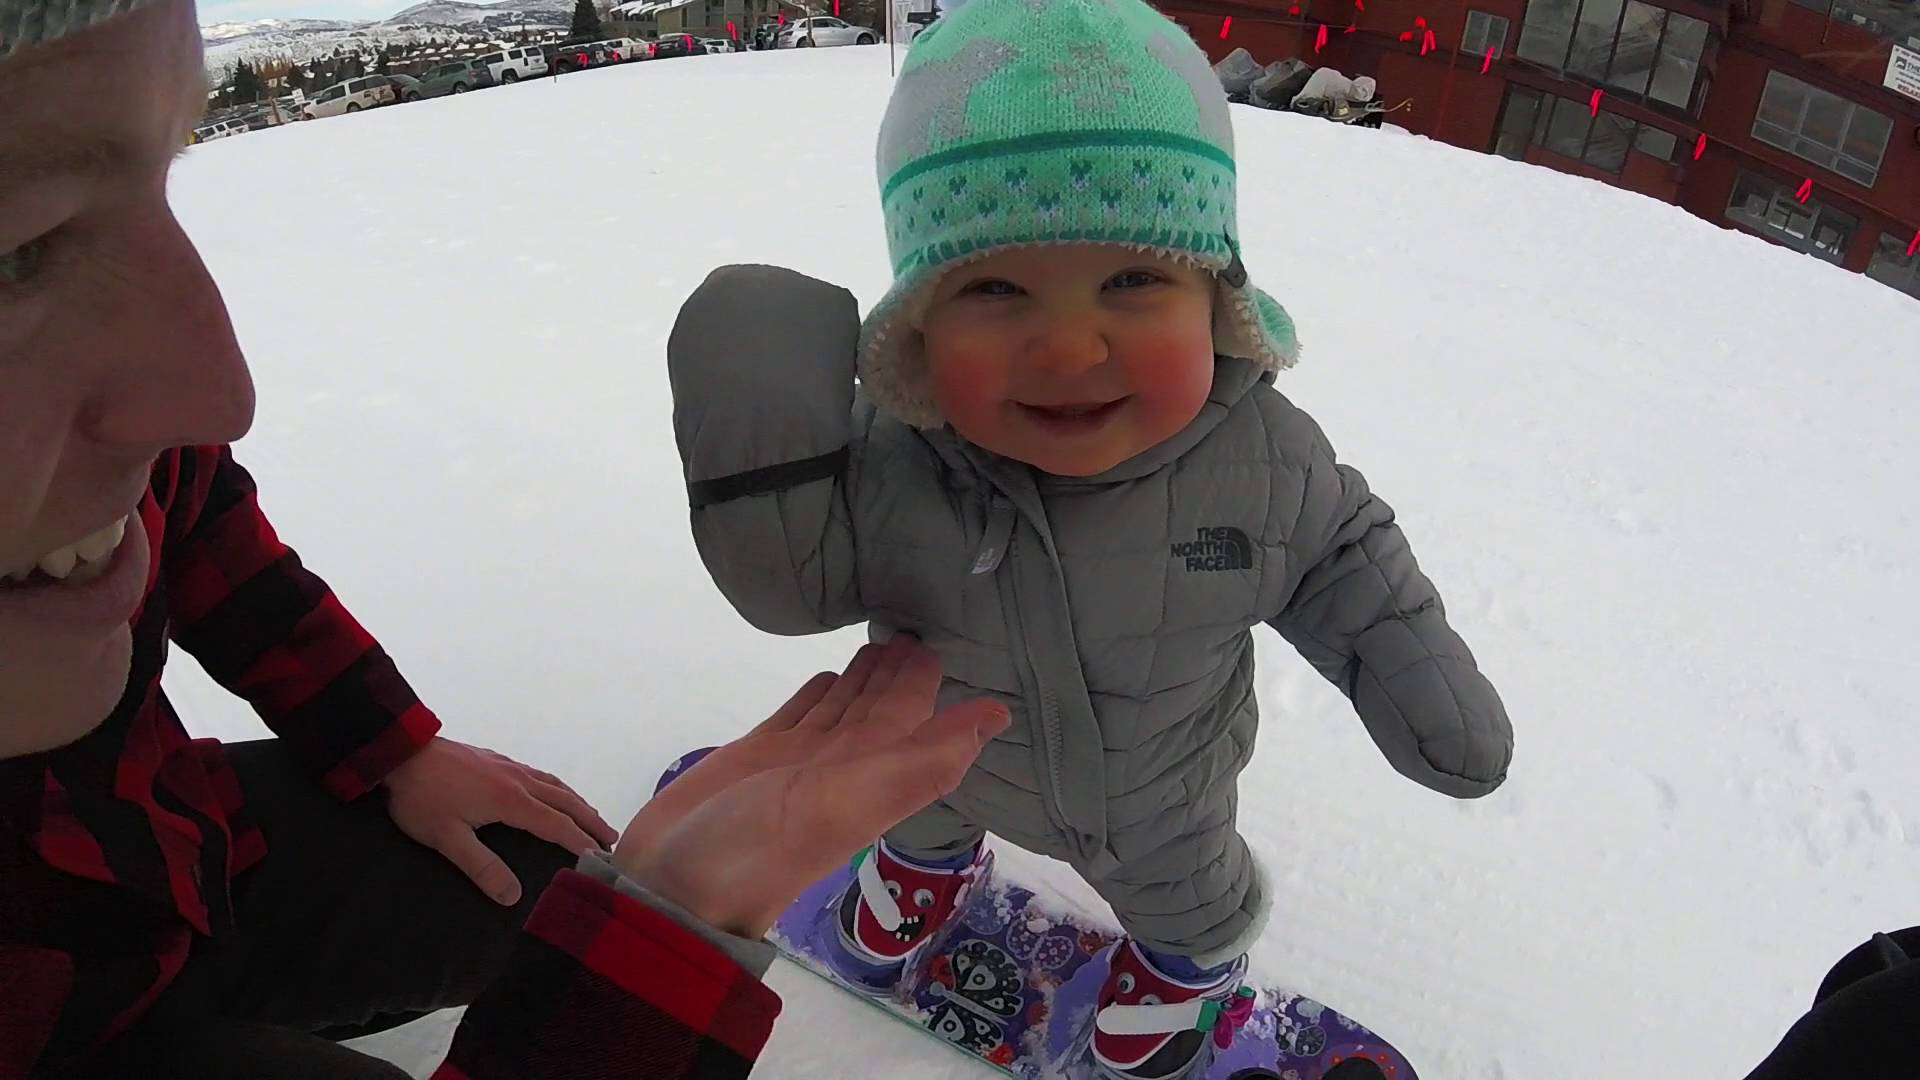 The smallest, cutest 'snowboarder'!